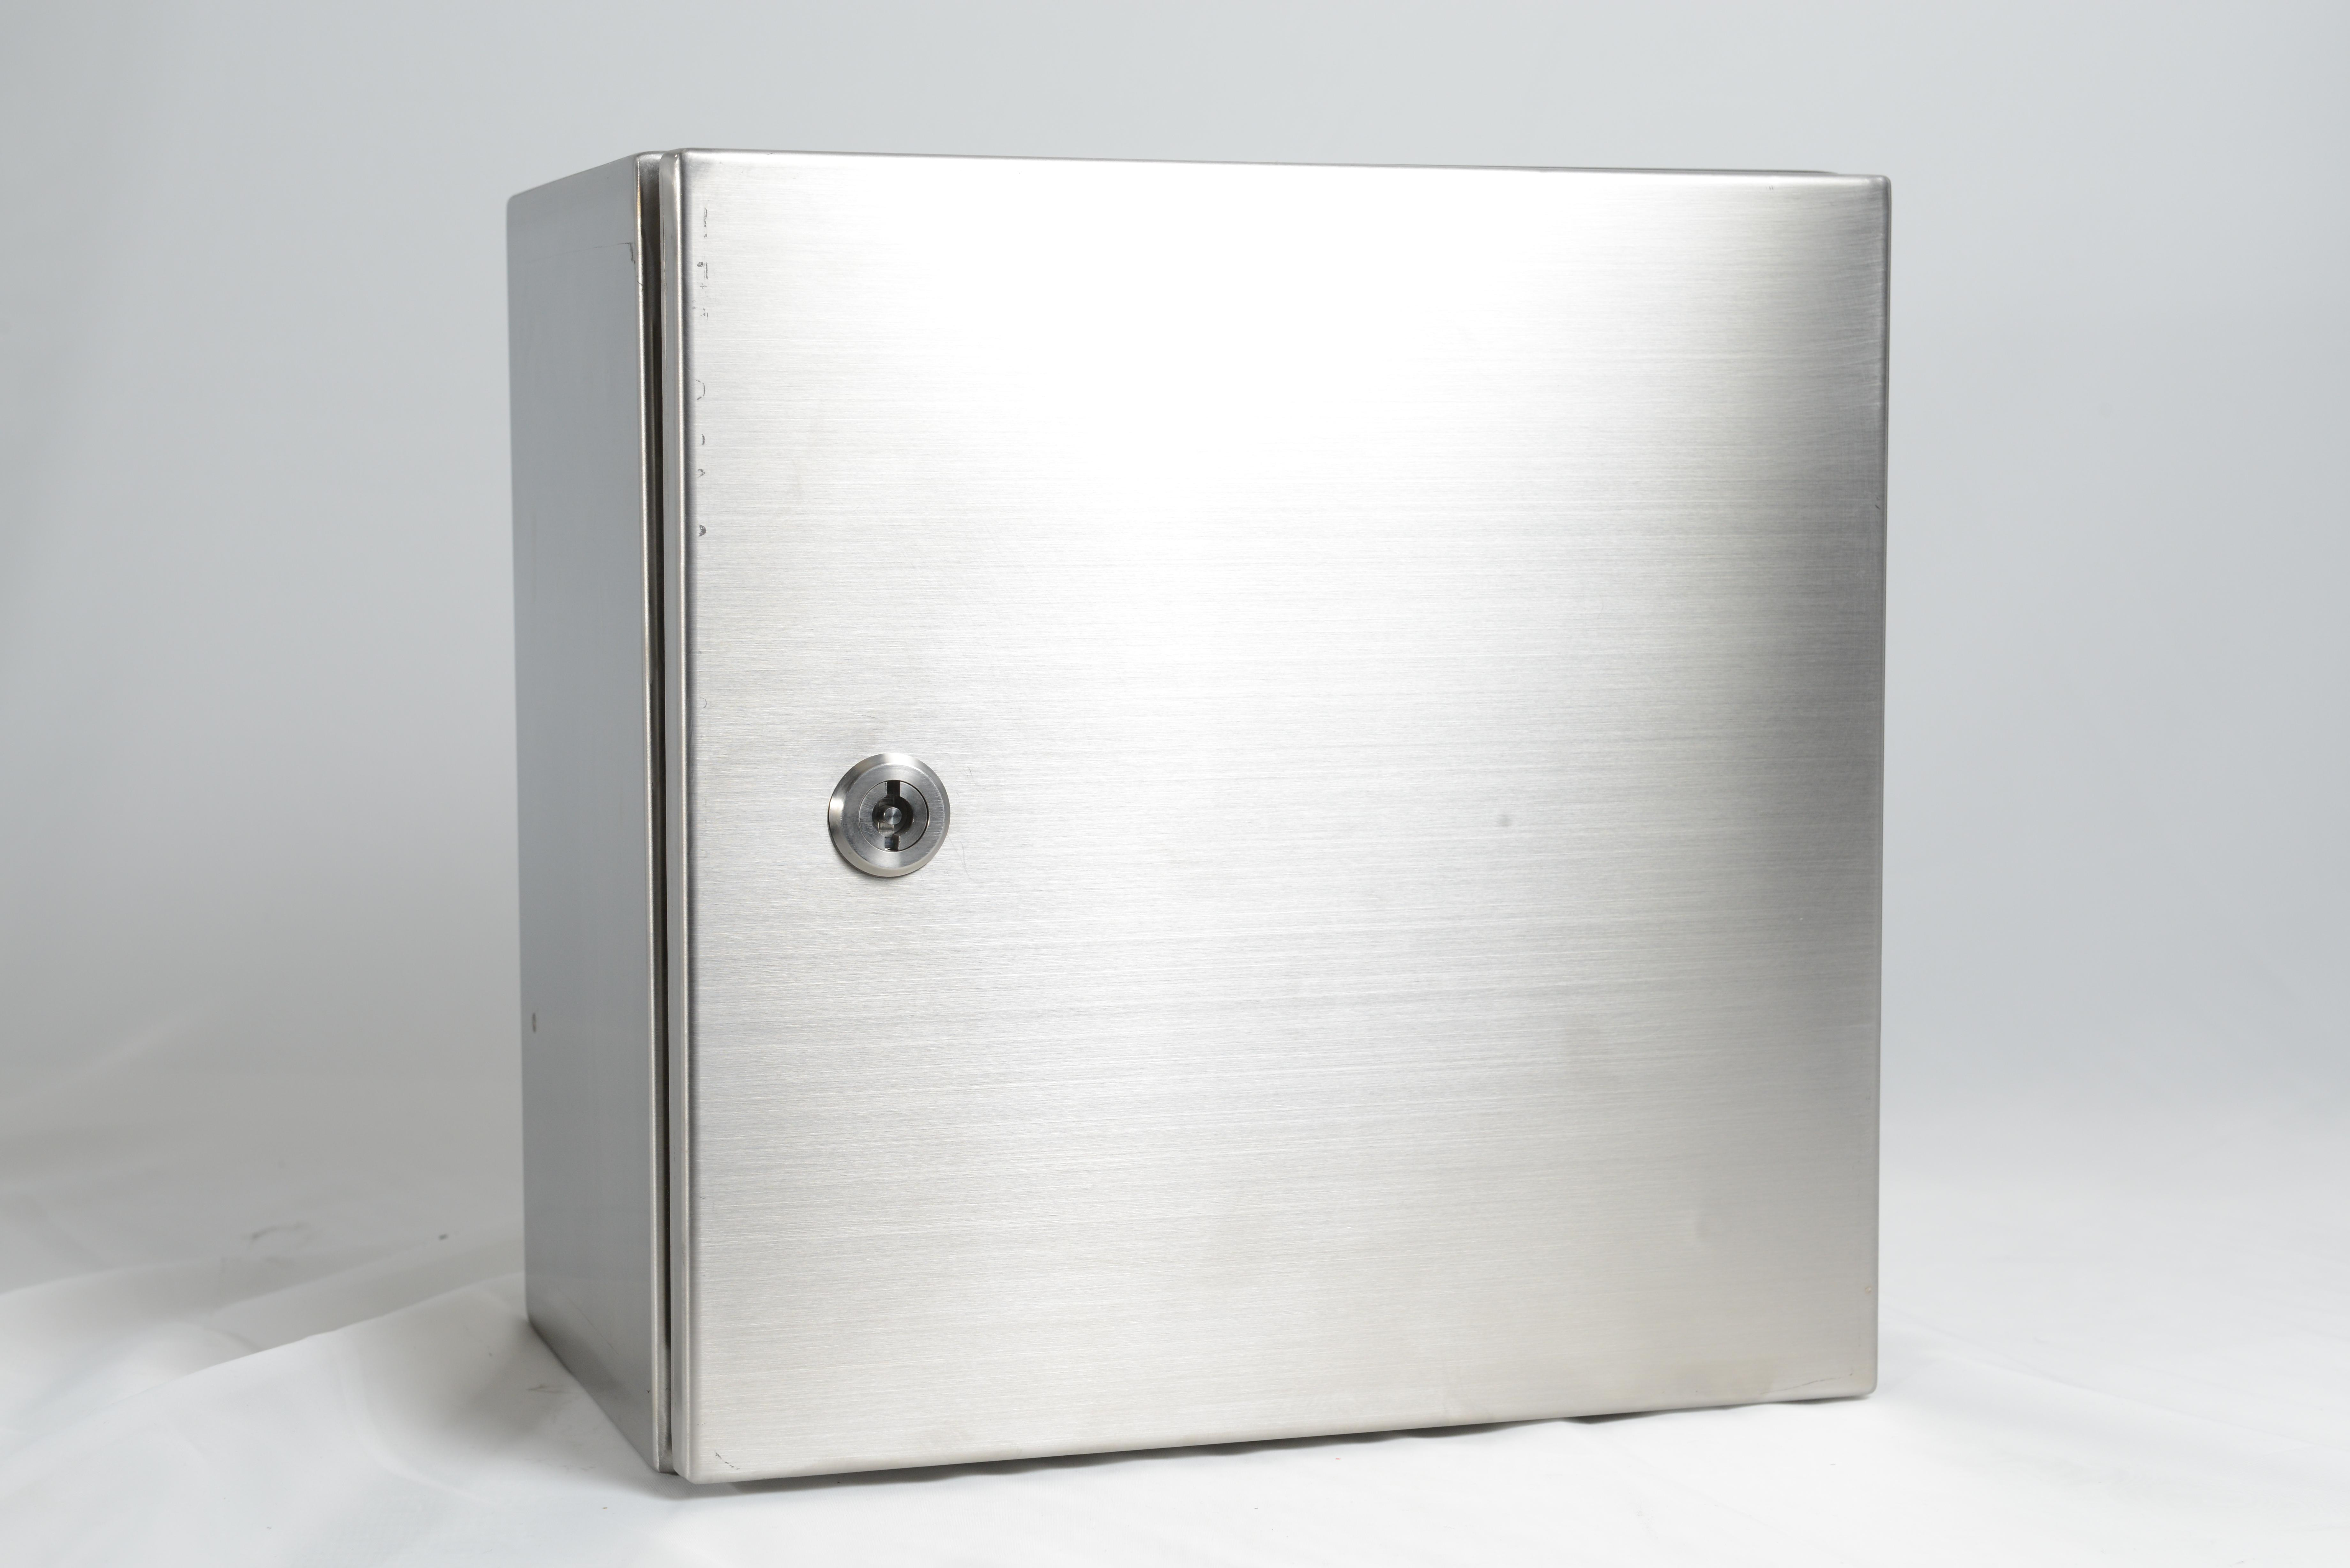 RCG stainless steel Enclosure 316 grade 700x500x300mm - Wall mounting